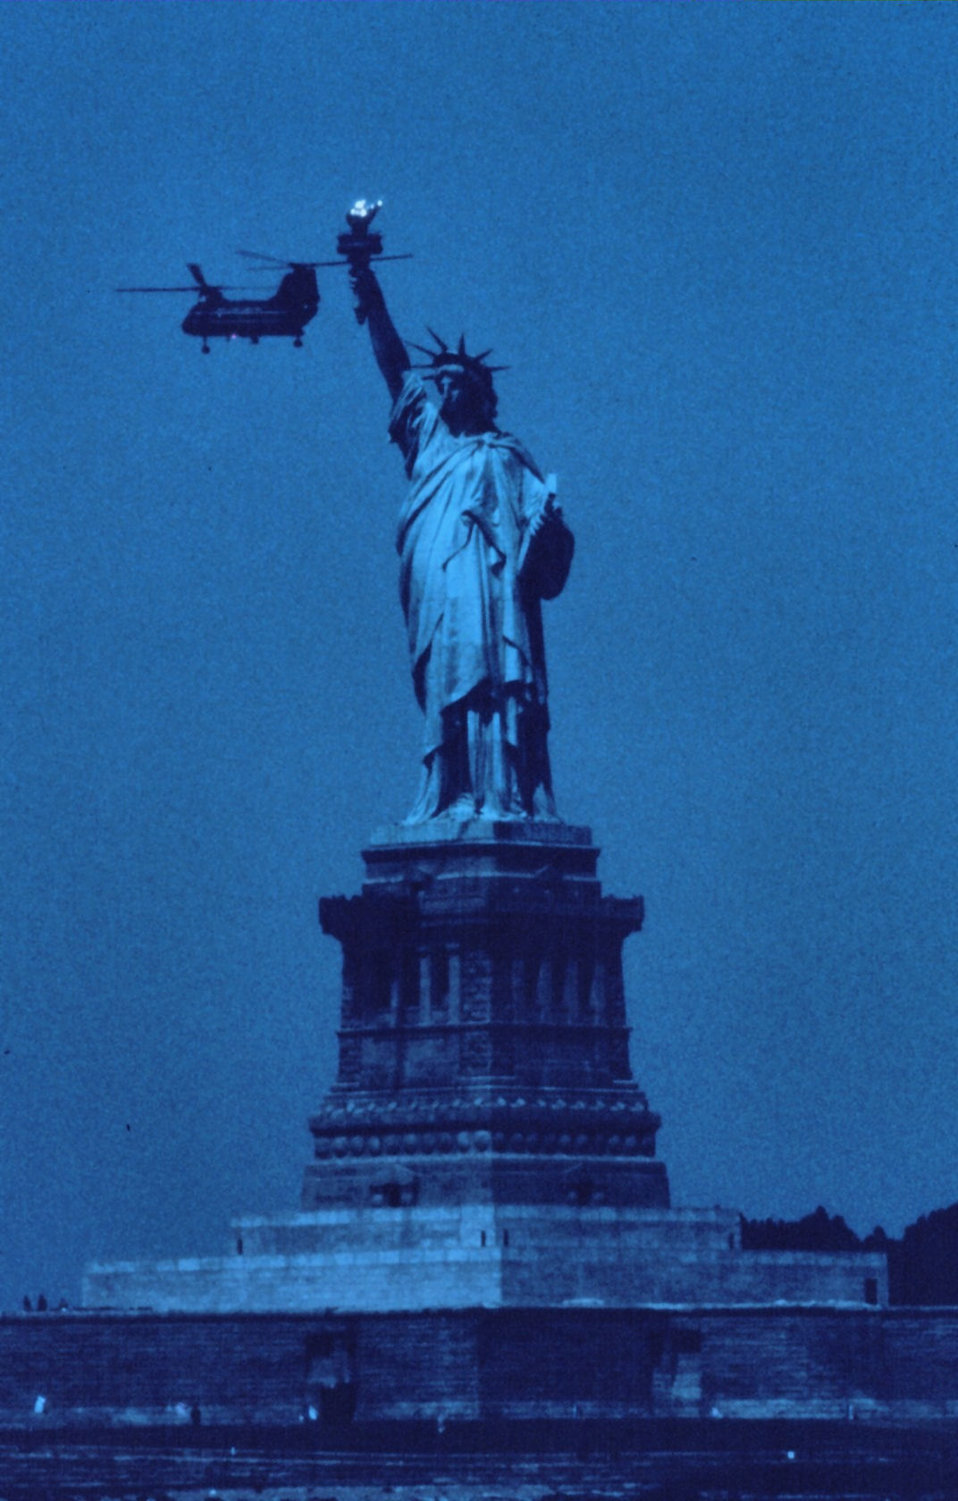 The Statue of Liberty, New York Harbor, with Navy helicopter during 1976 Bicentennial Tall Ship celebration